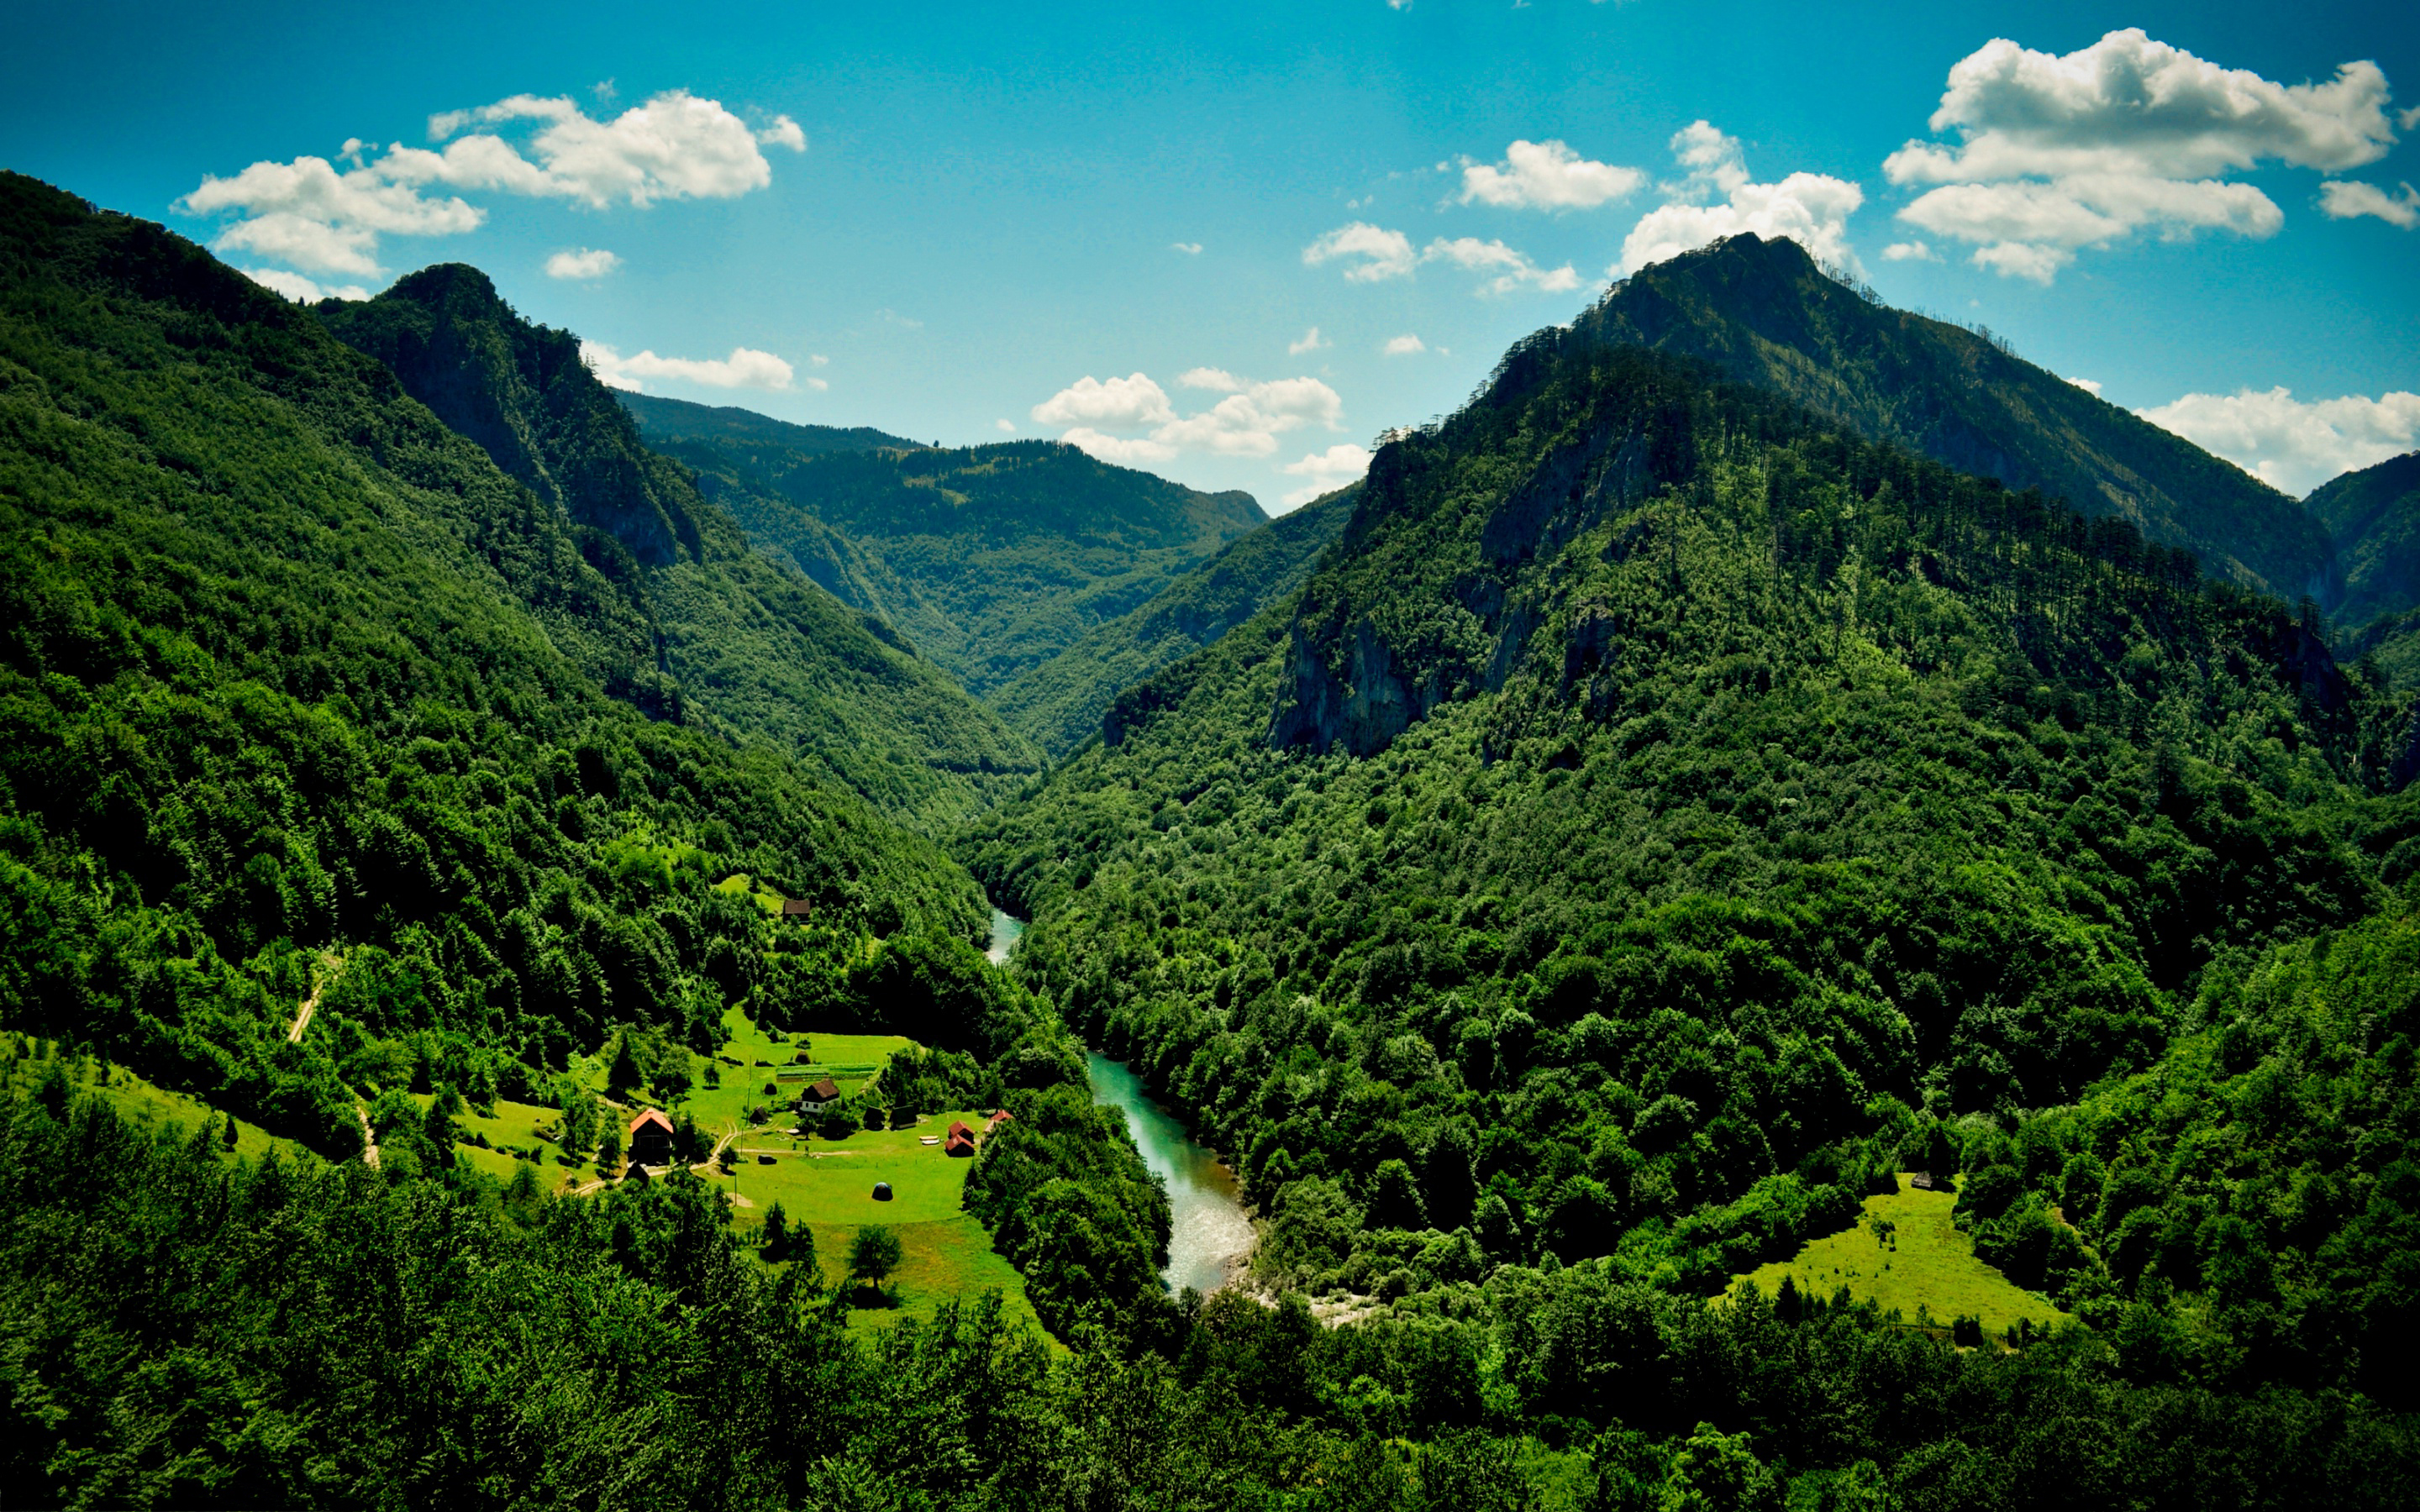 Green Mountain Wallpaper Backgrounds On Most Beautiful Wallpapers ...